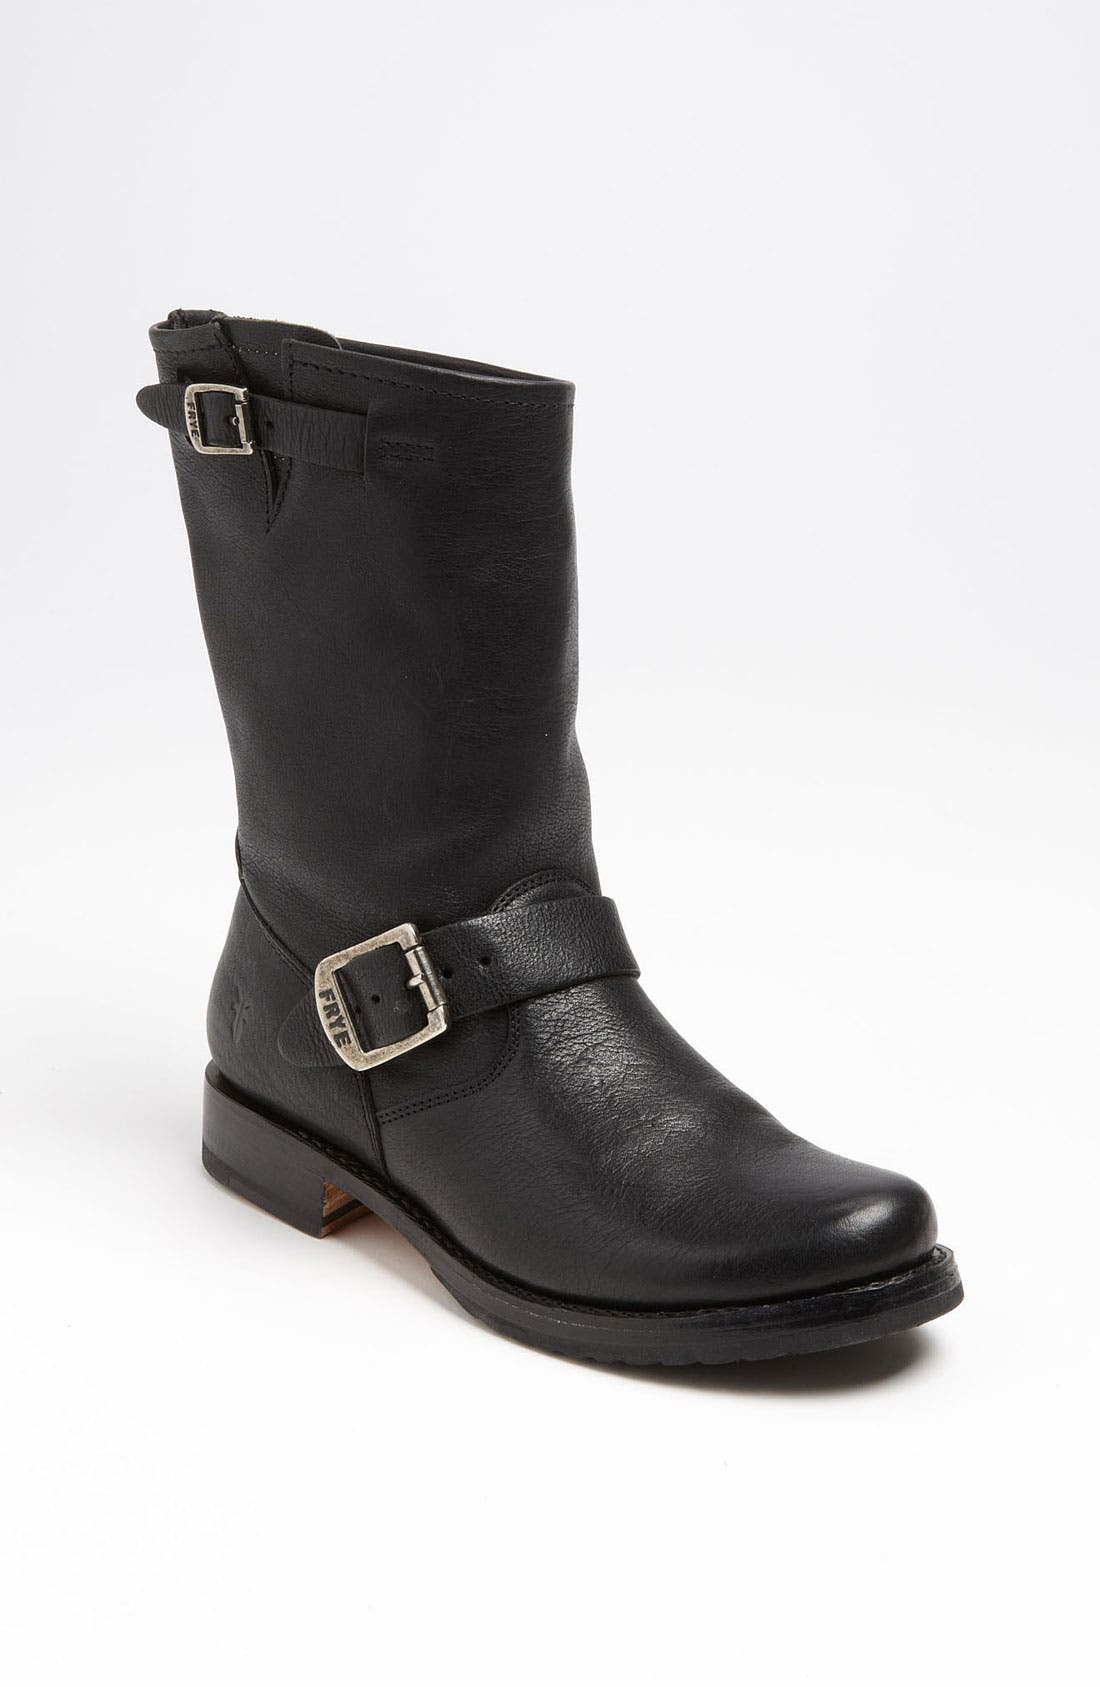 Alternate Image 1 Selected - Frye 'Veronica' Short Boot